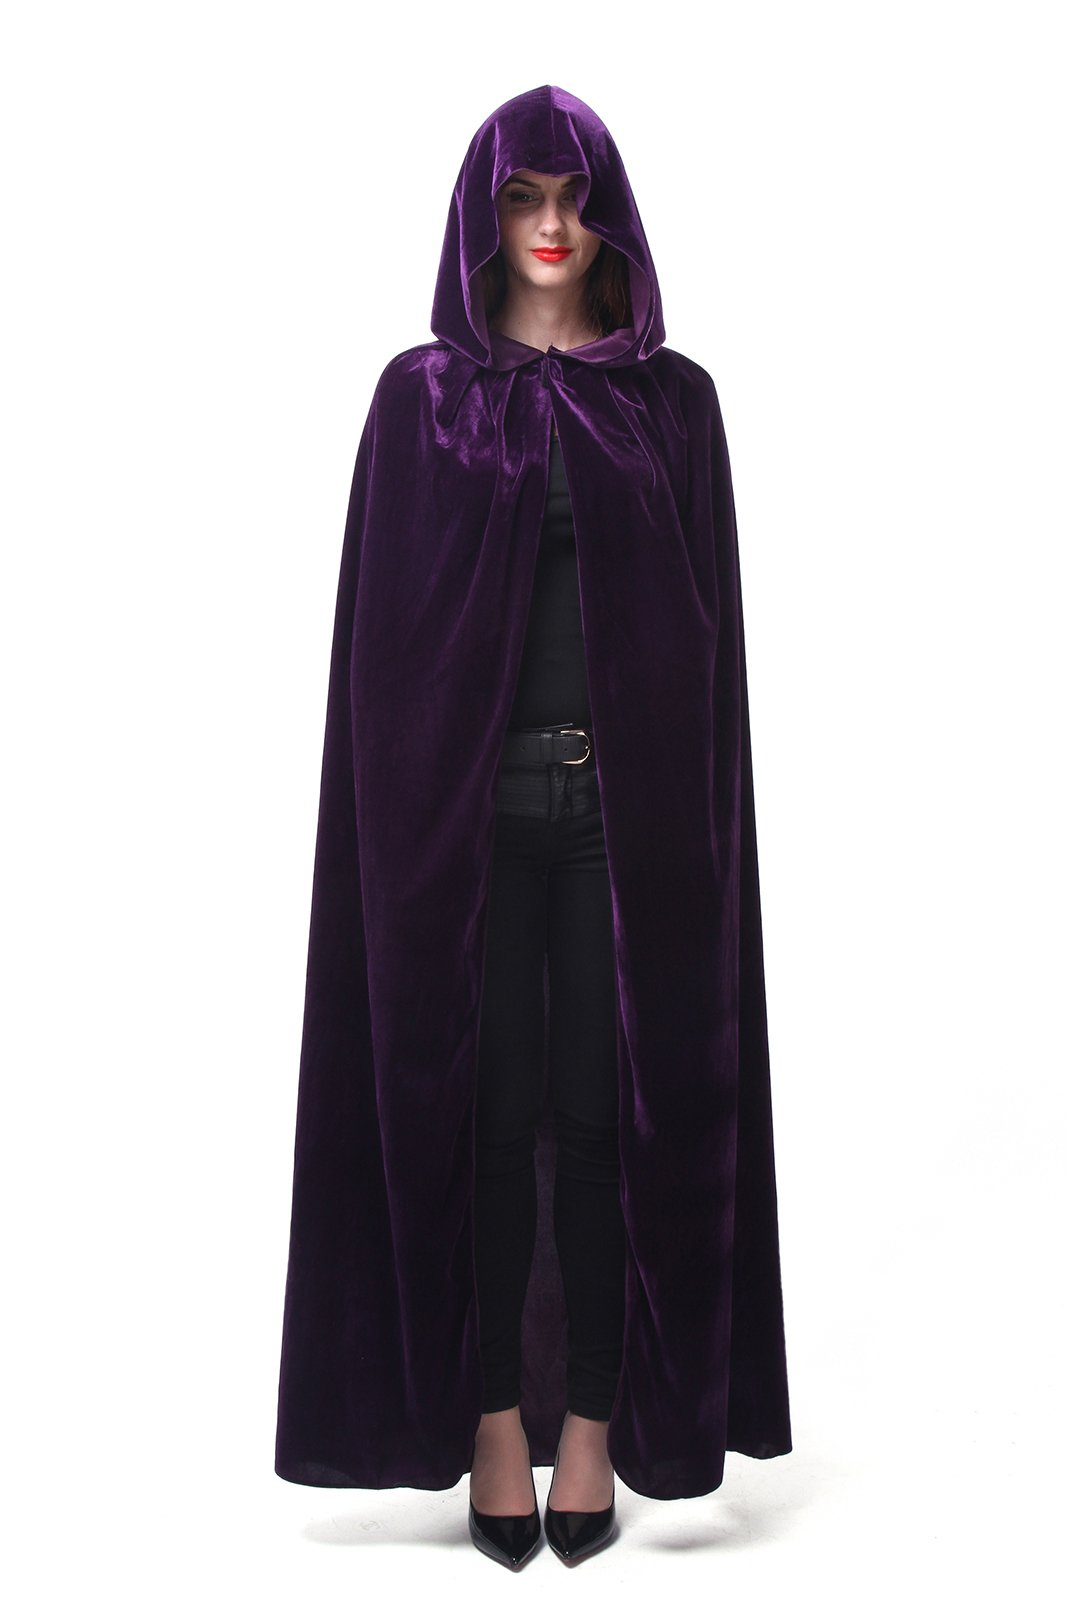 Nuoqi Mens Halloween Costumes Unisex Adults Cosplay Purple Cape Cosplay Costumes